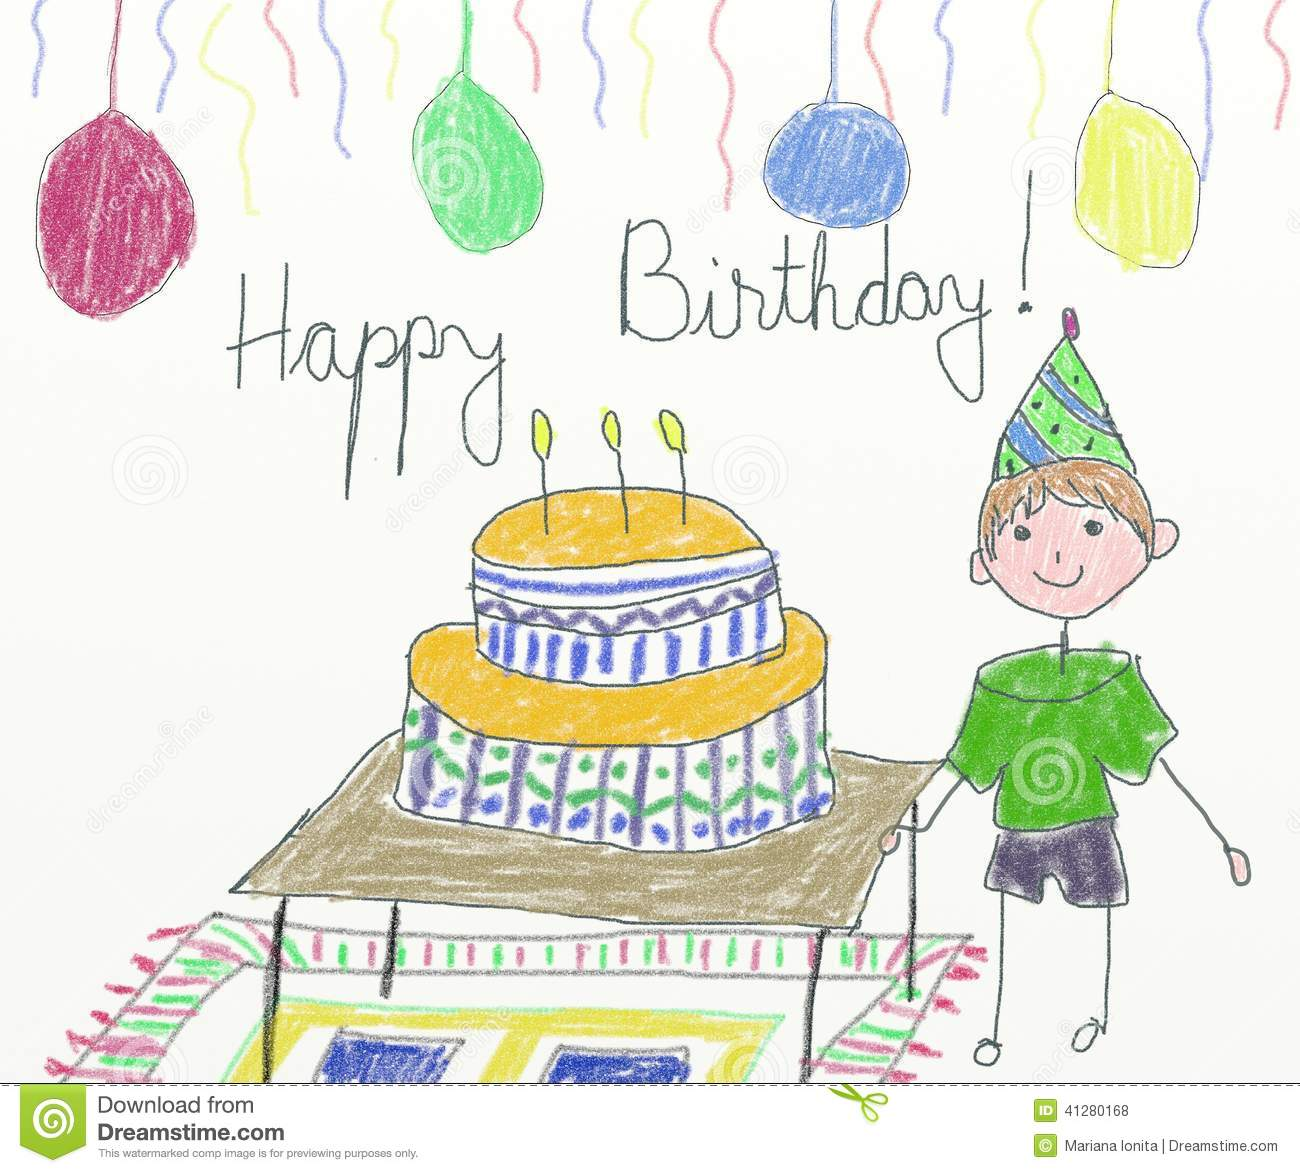 birthday drawing for kids ; happy-birthday-card-children-drawing-41280168